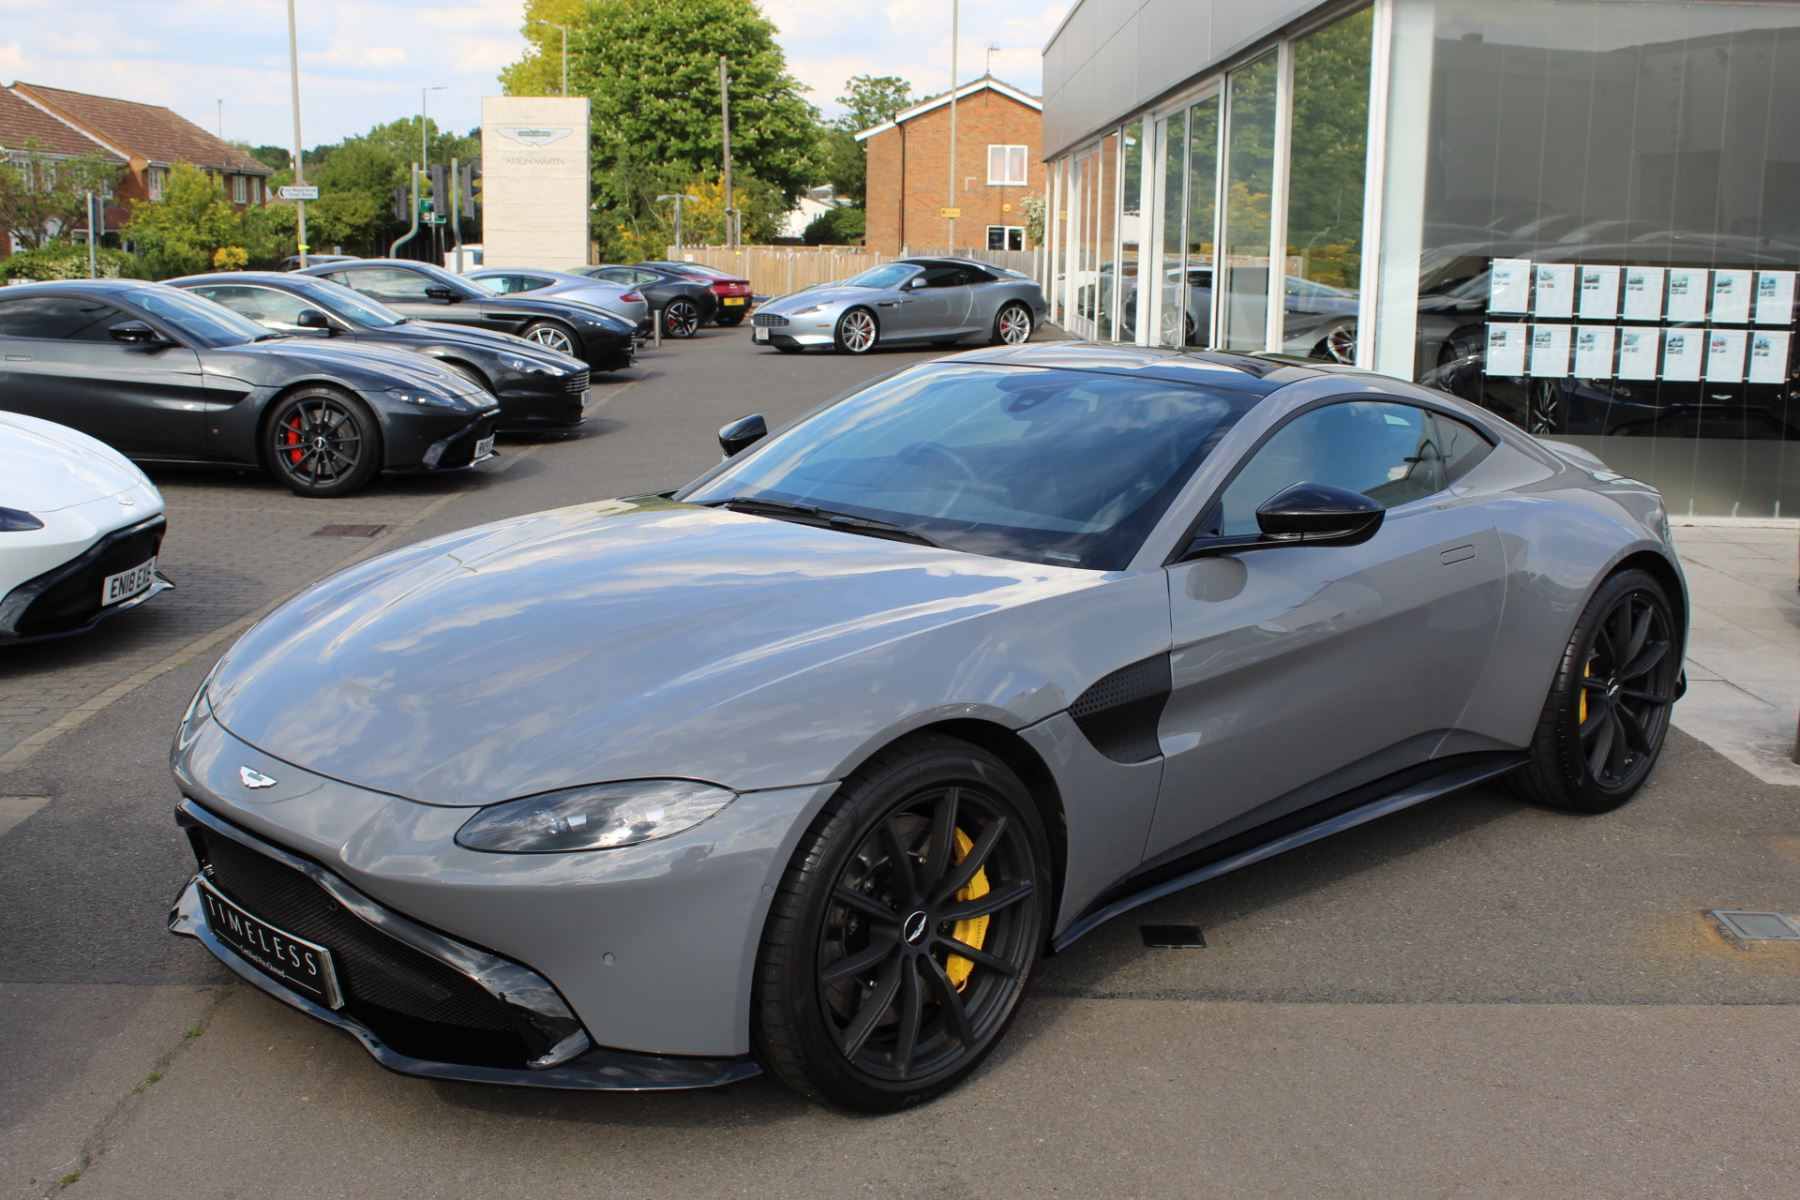 Aston Martin V8 Vantage Coupe 2dr ZF 8 Speed image 4